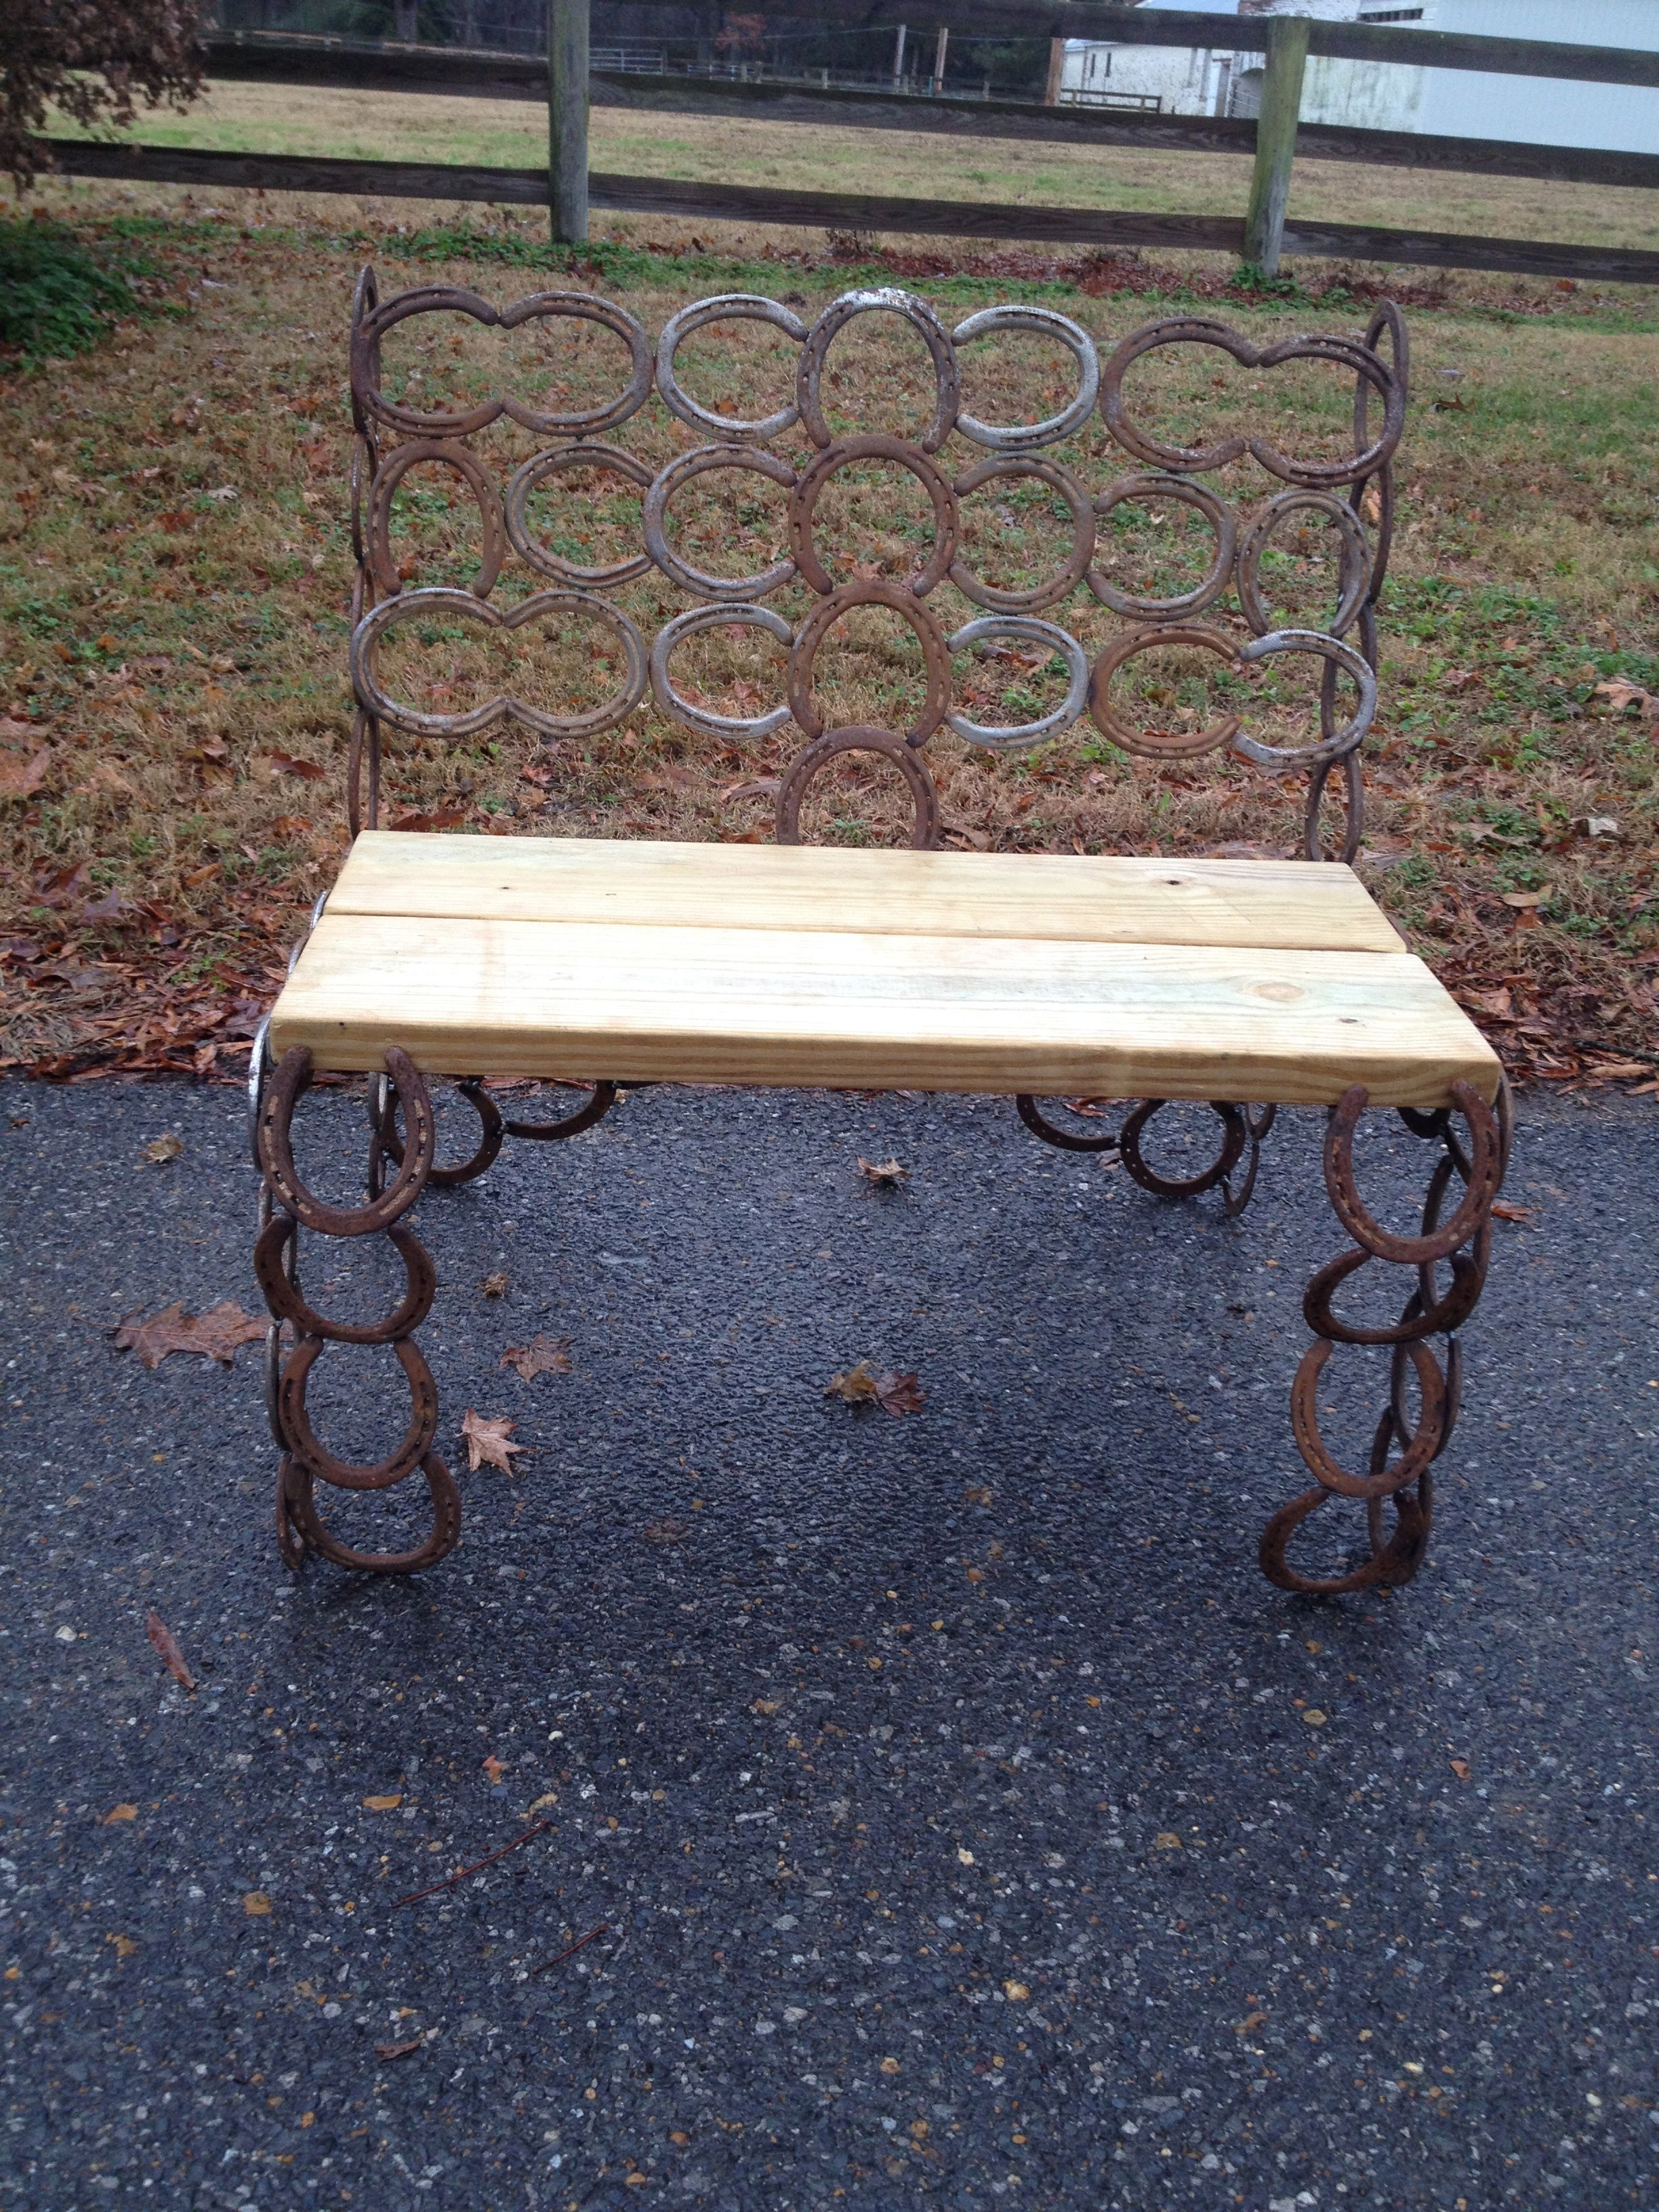 Hand Crafted Horseshoe Wood Seat Bench Used Shoes by travis